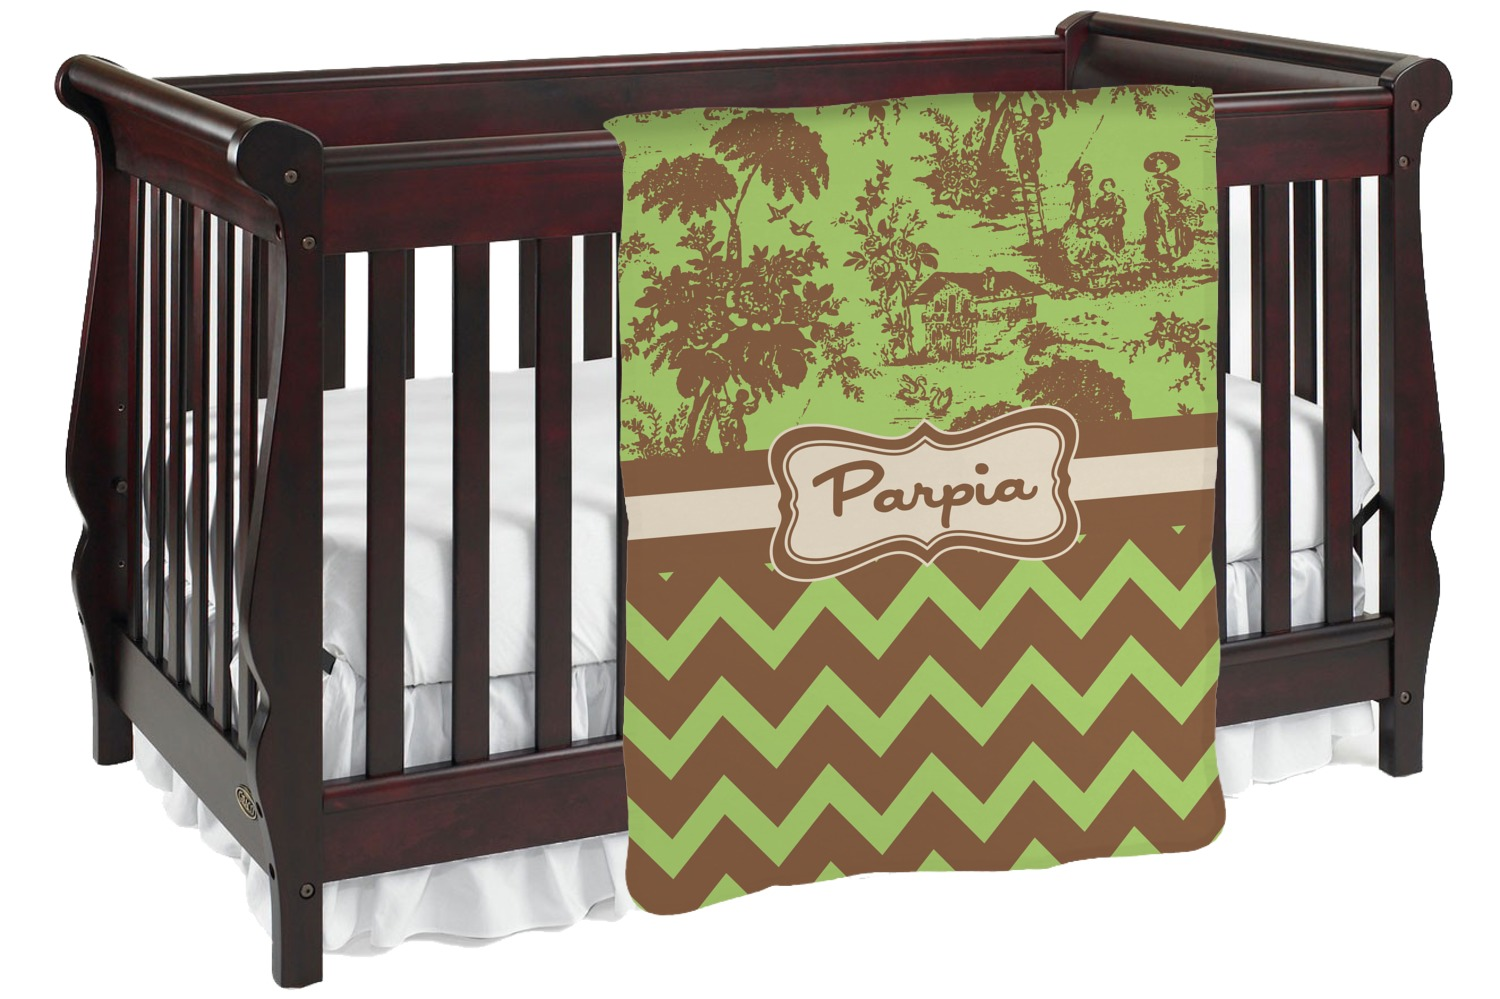 8b5734f066c6 Green & Brown Toile & Chevron Baby Blanket (Personalized ...